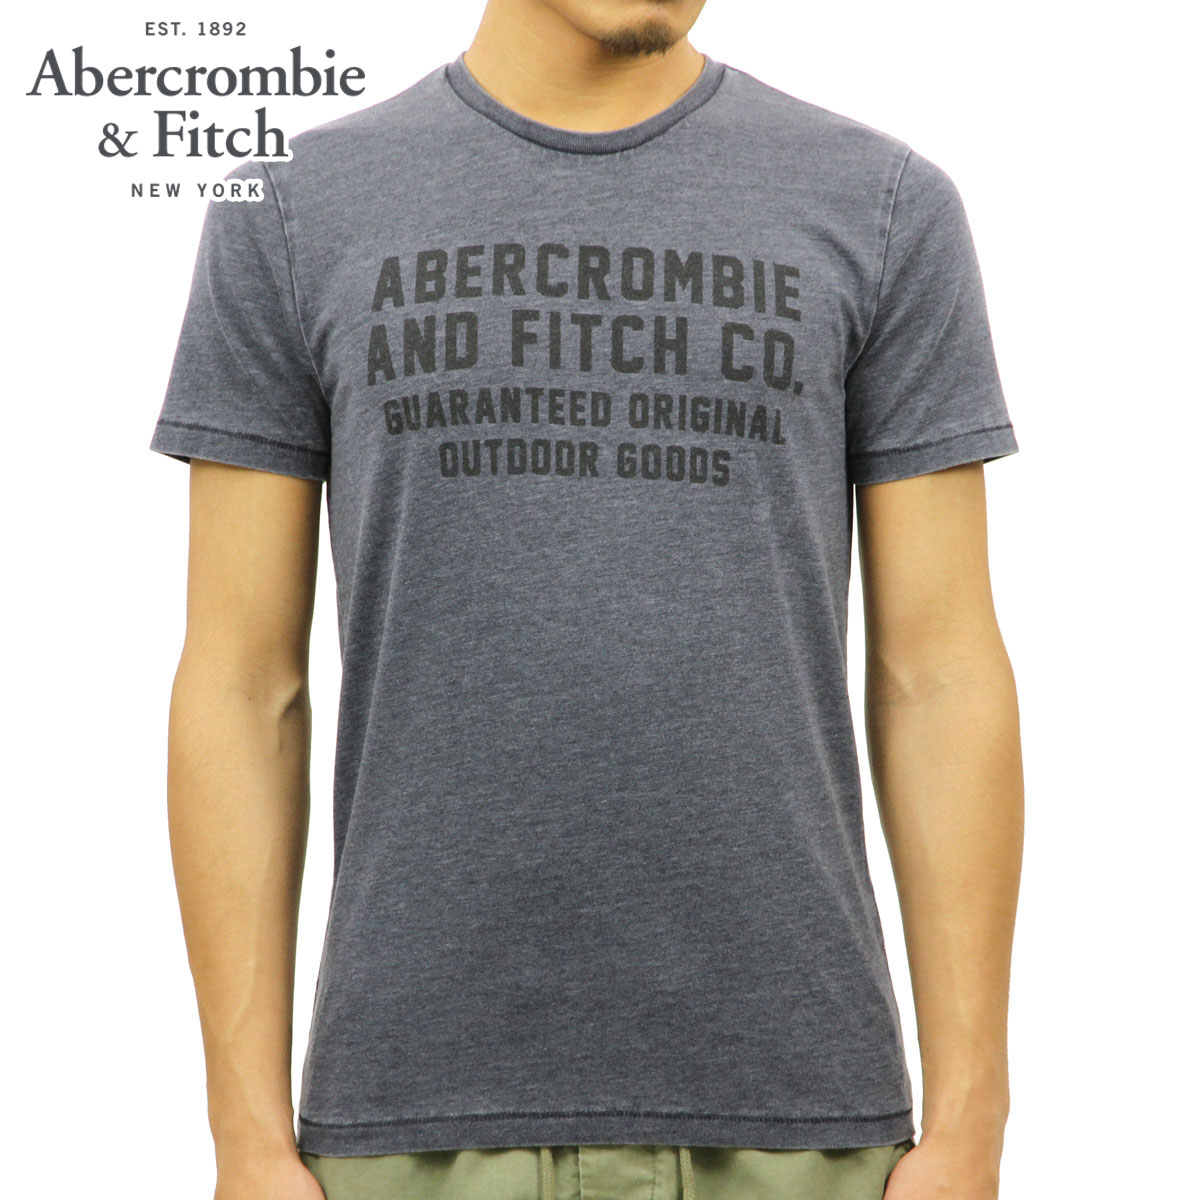 b64835dd ABBA black Abercrombie & Fitch regular article men short sleeves T-shirt  PRINTED LOGO ...